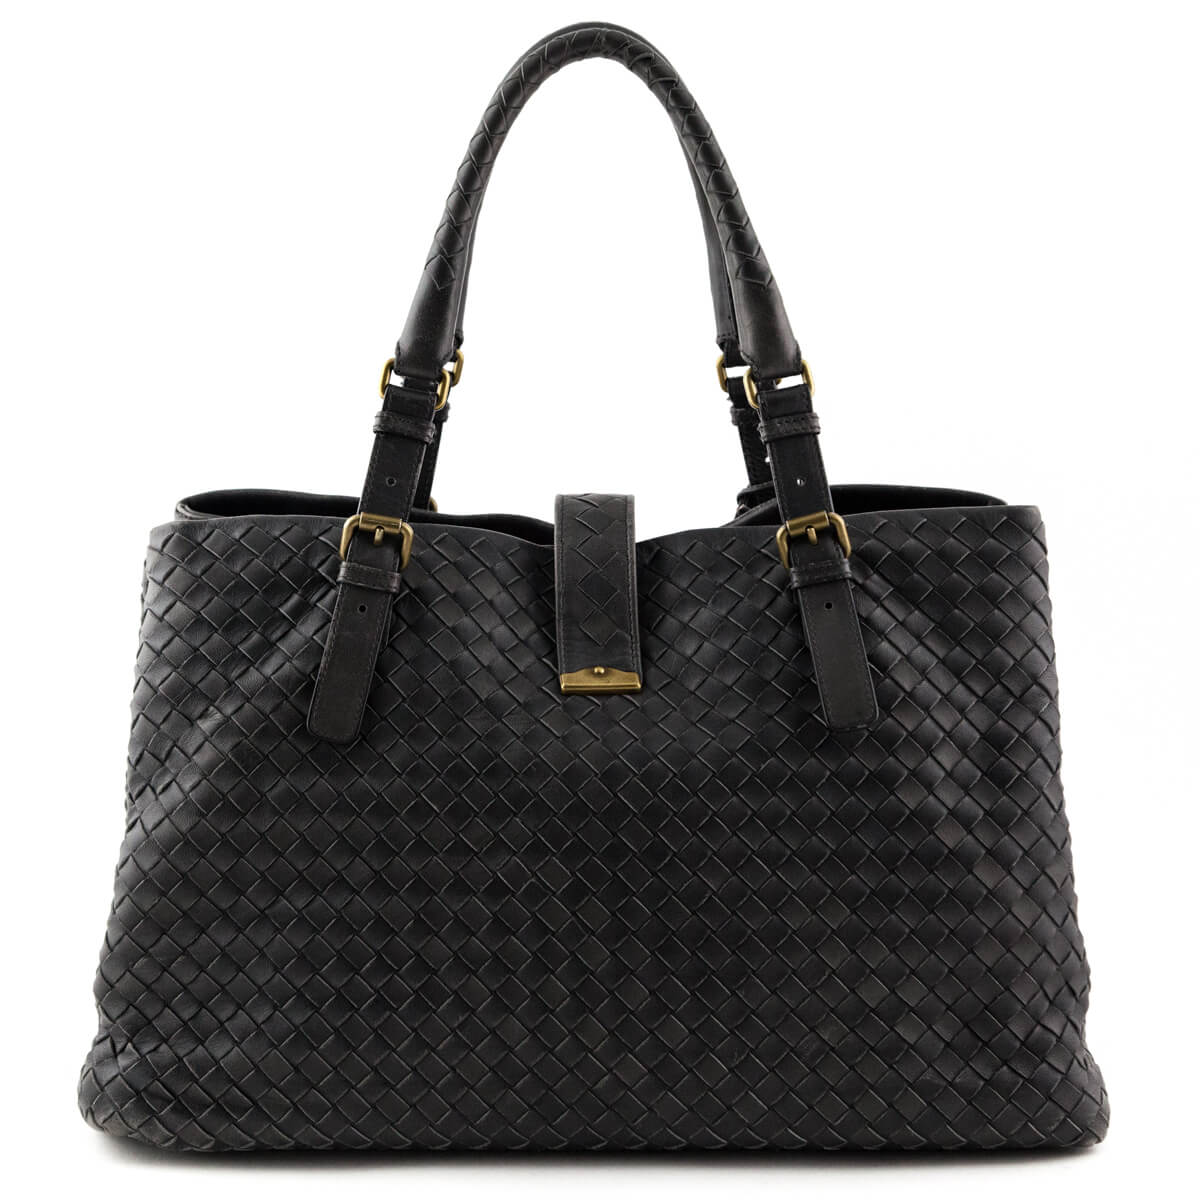 ... Bottega Veneta Ferro Intrecciato Large Roma Bag - LOVE that BAG -  Preowned Authentic Designer Handbags ... 852207d015555